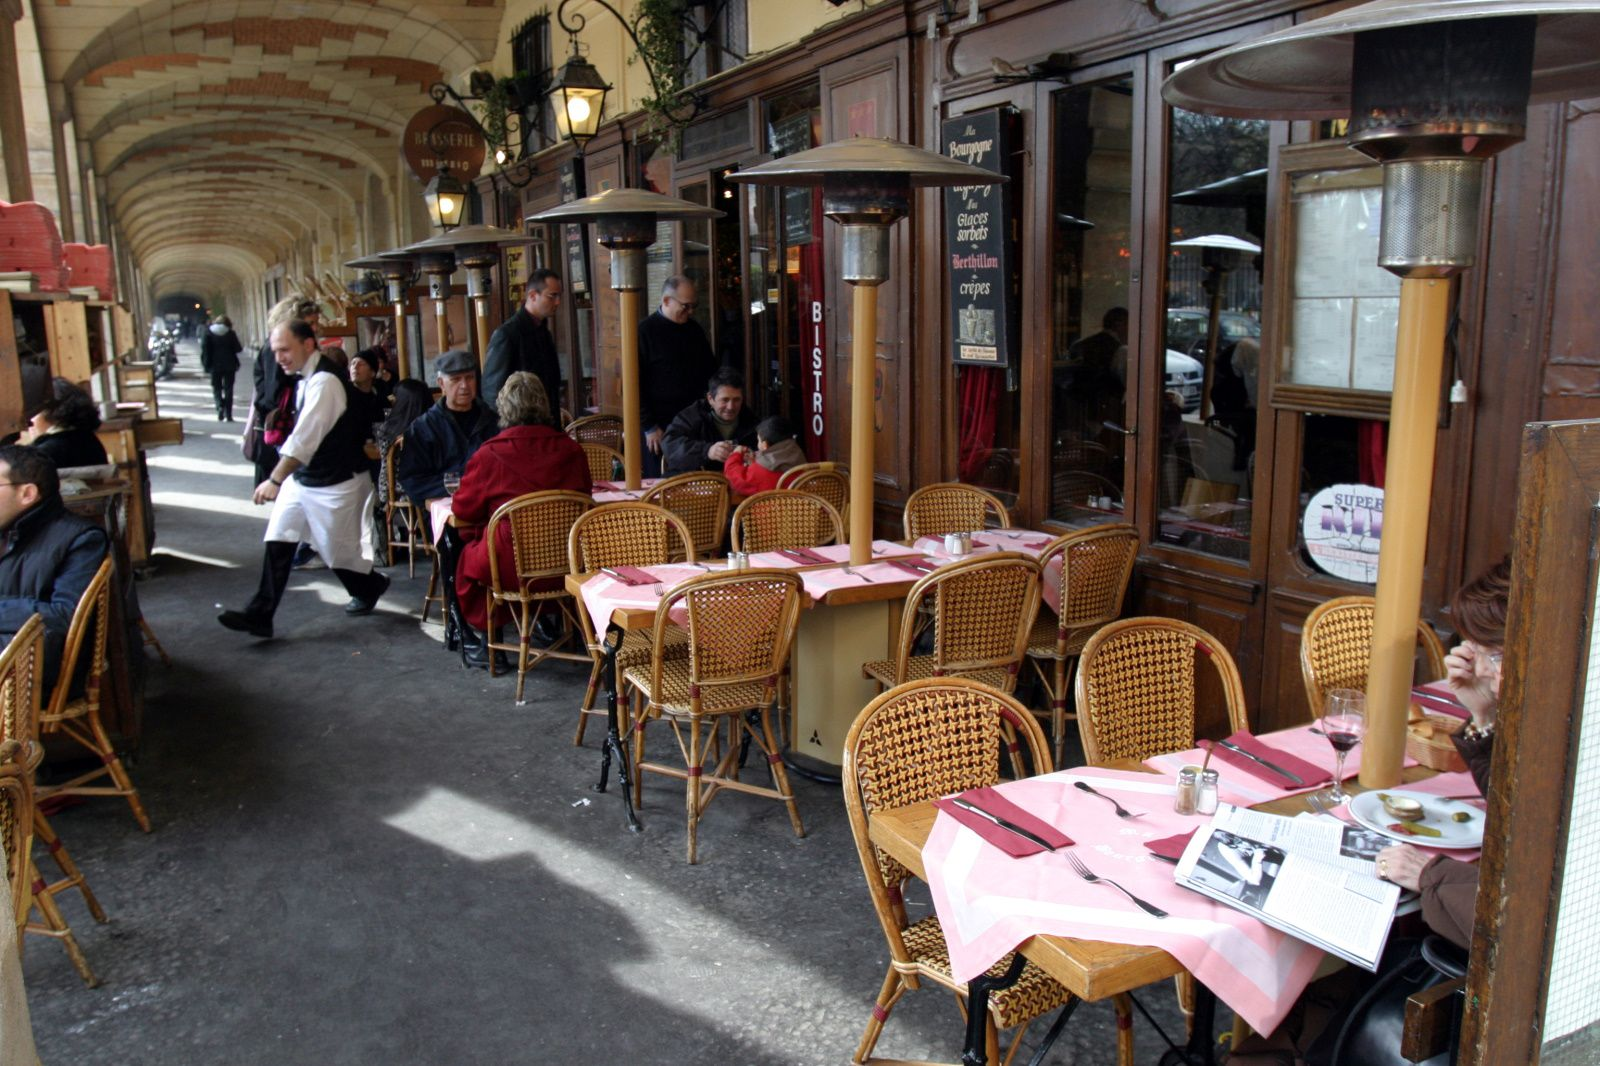 Restaurant Etiquette and Dining in France